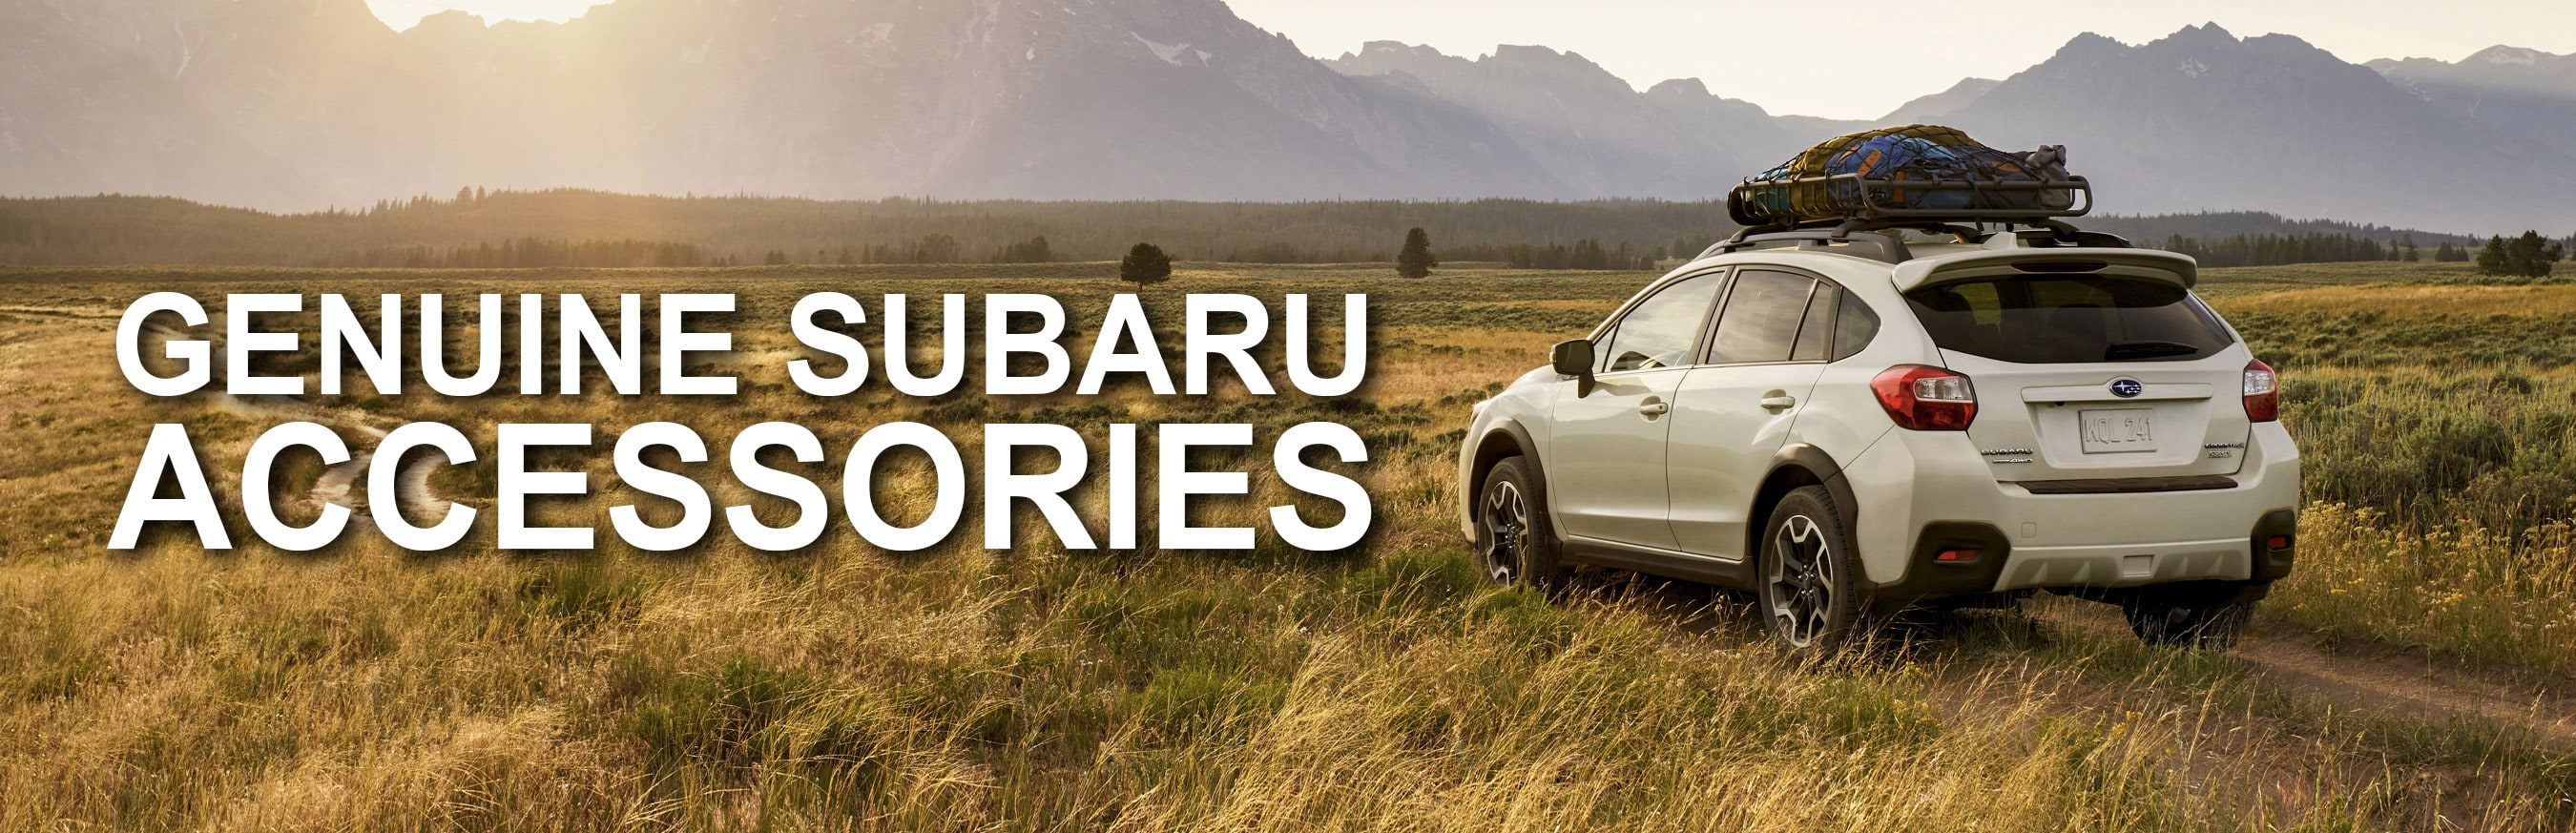 Subaru Dealer In Hunt Valley >> Genuine Subaru Accessories | AutoNation Subaru West